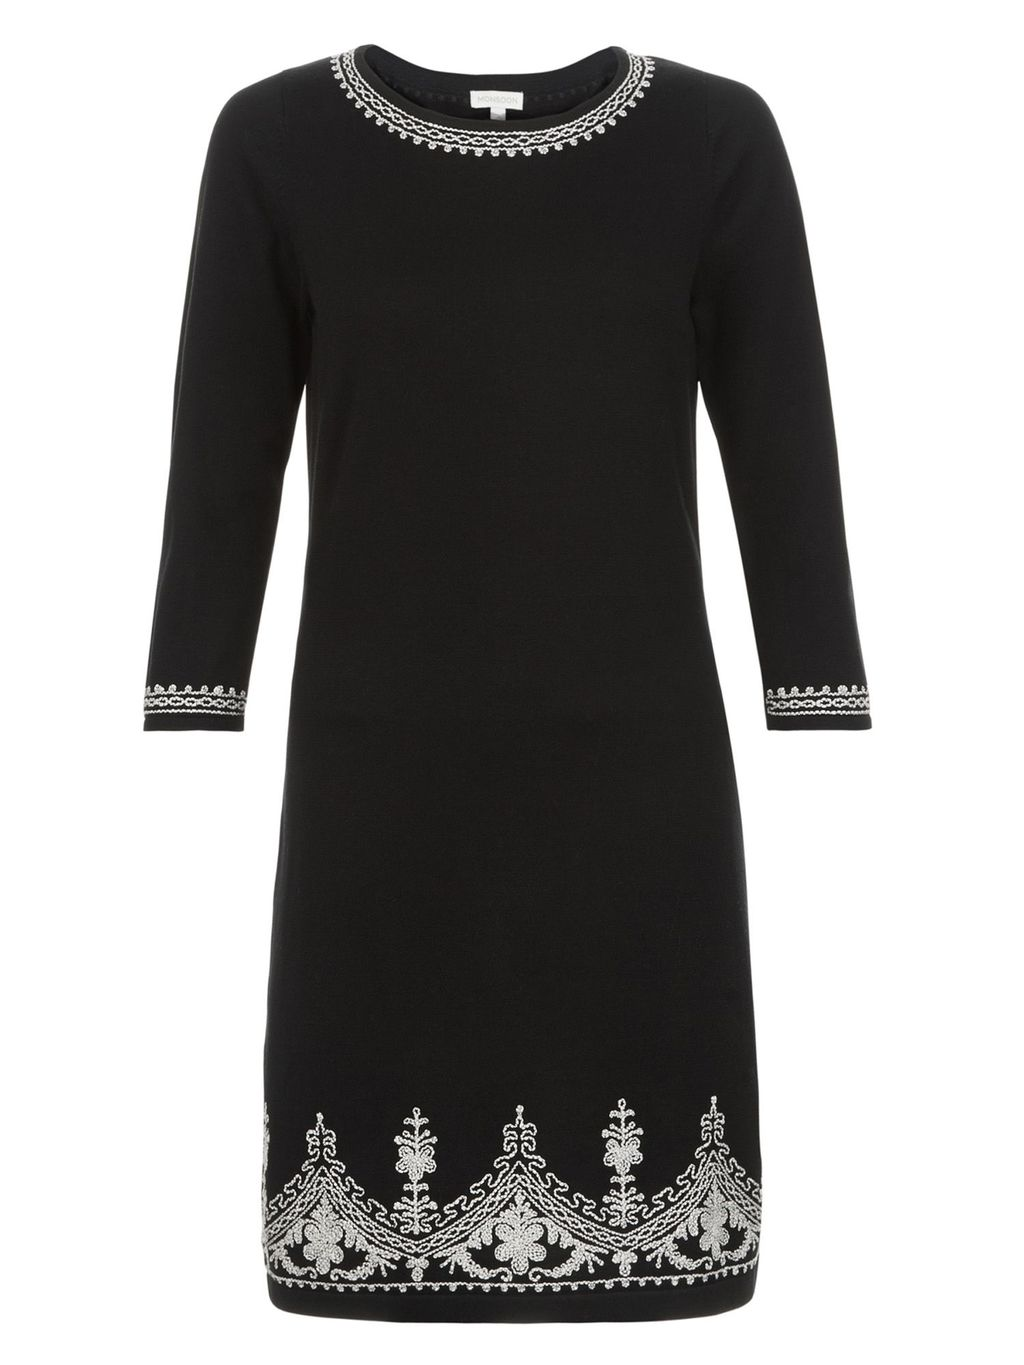 Tina Cornelli Dress, Black - style: shift; secondary colour: white; predominant colour: black; occasions: evening; length: just above the knee; fit: body skimming; fibres: cotton - 100%; neckline: crew; sleeve length: 3/4 length; sleeve style: standard; pattern type: fabric; pattern: patterned/print; texture group: jersey - stretchy/drapey; multicoloured: multicoloured; season: a/w 2016; wardrobe: event